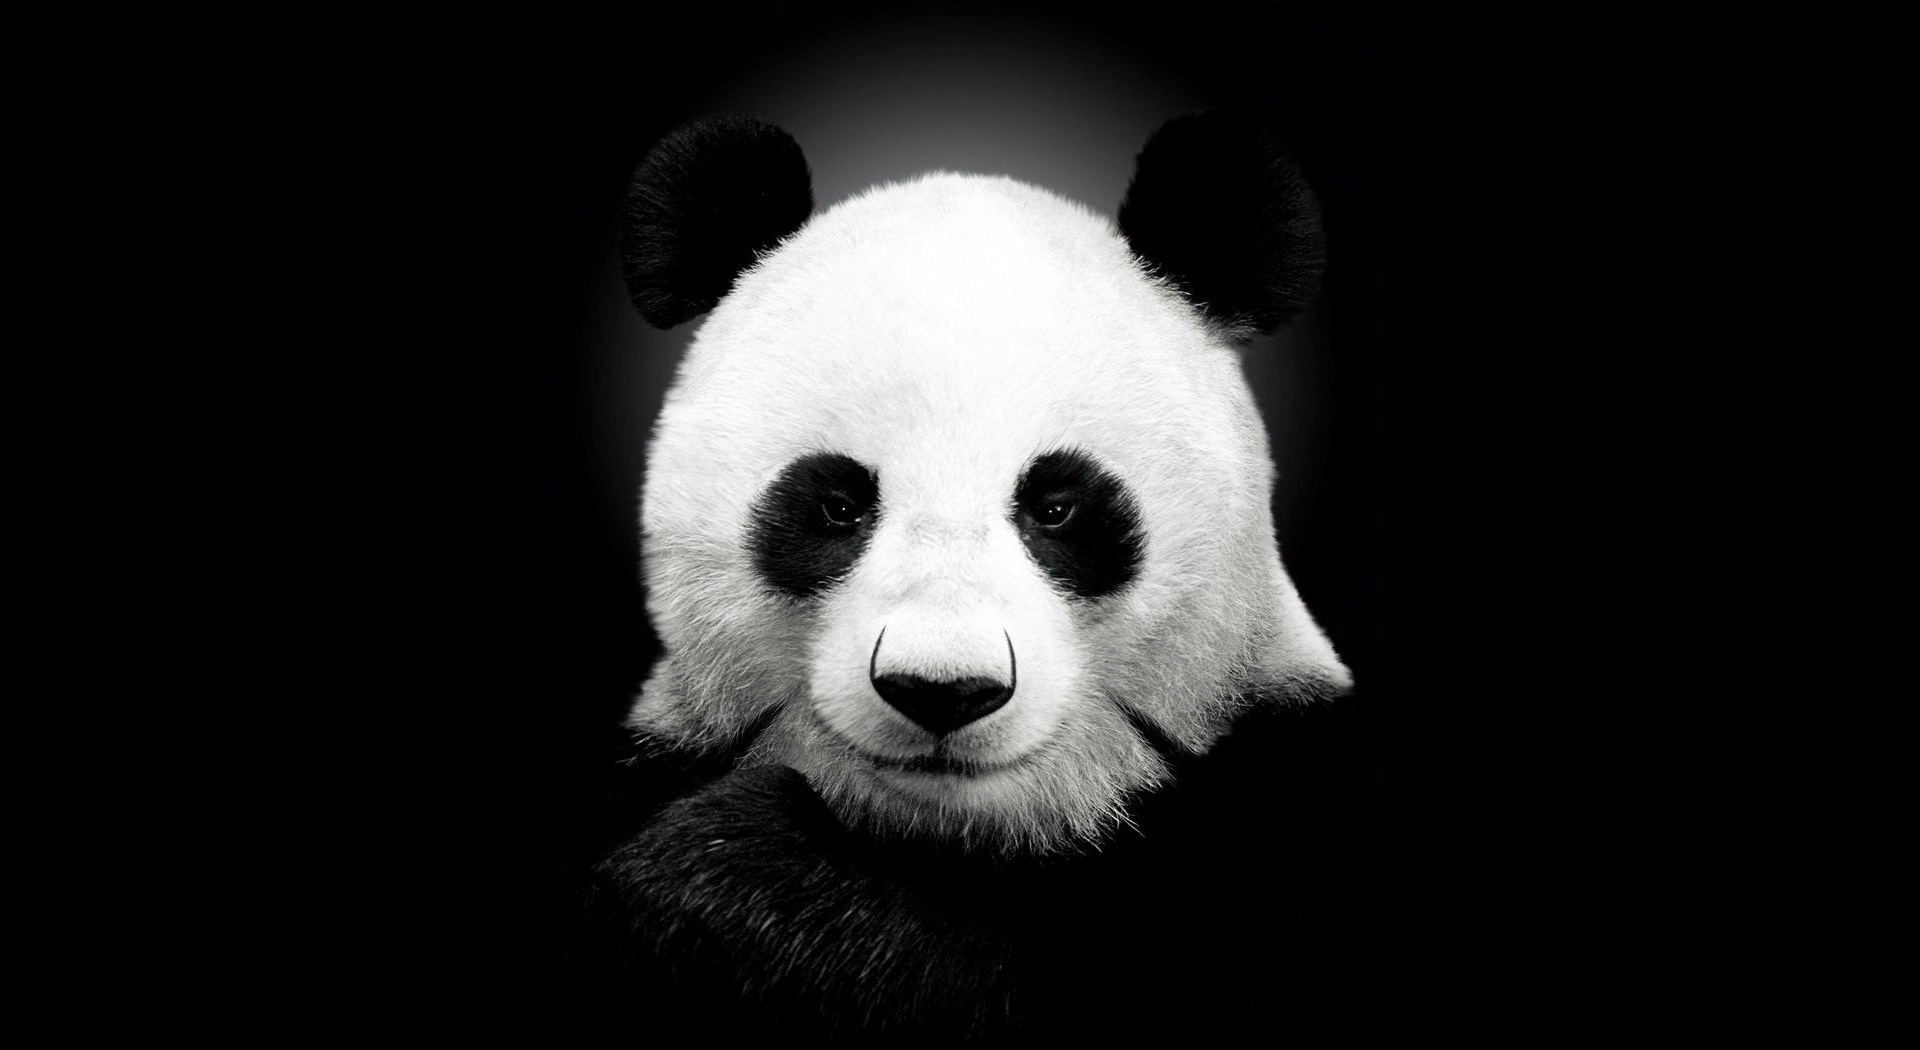 33219 download wallpaper Animals, Pandas screensavers and pictures for free